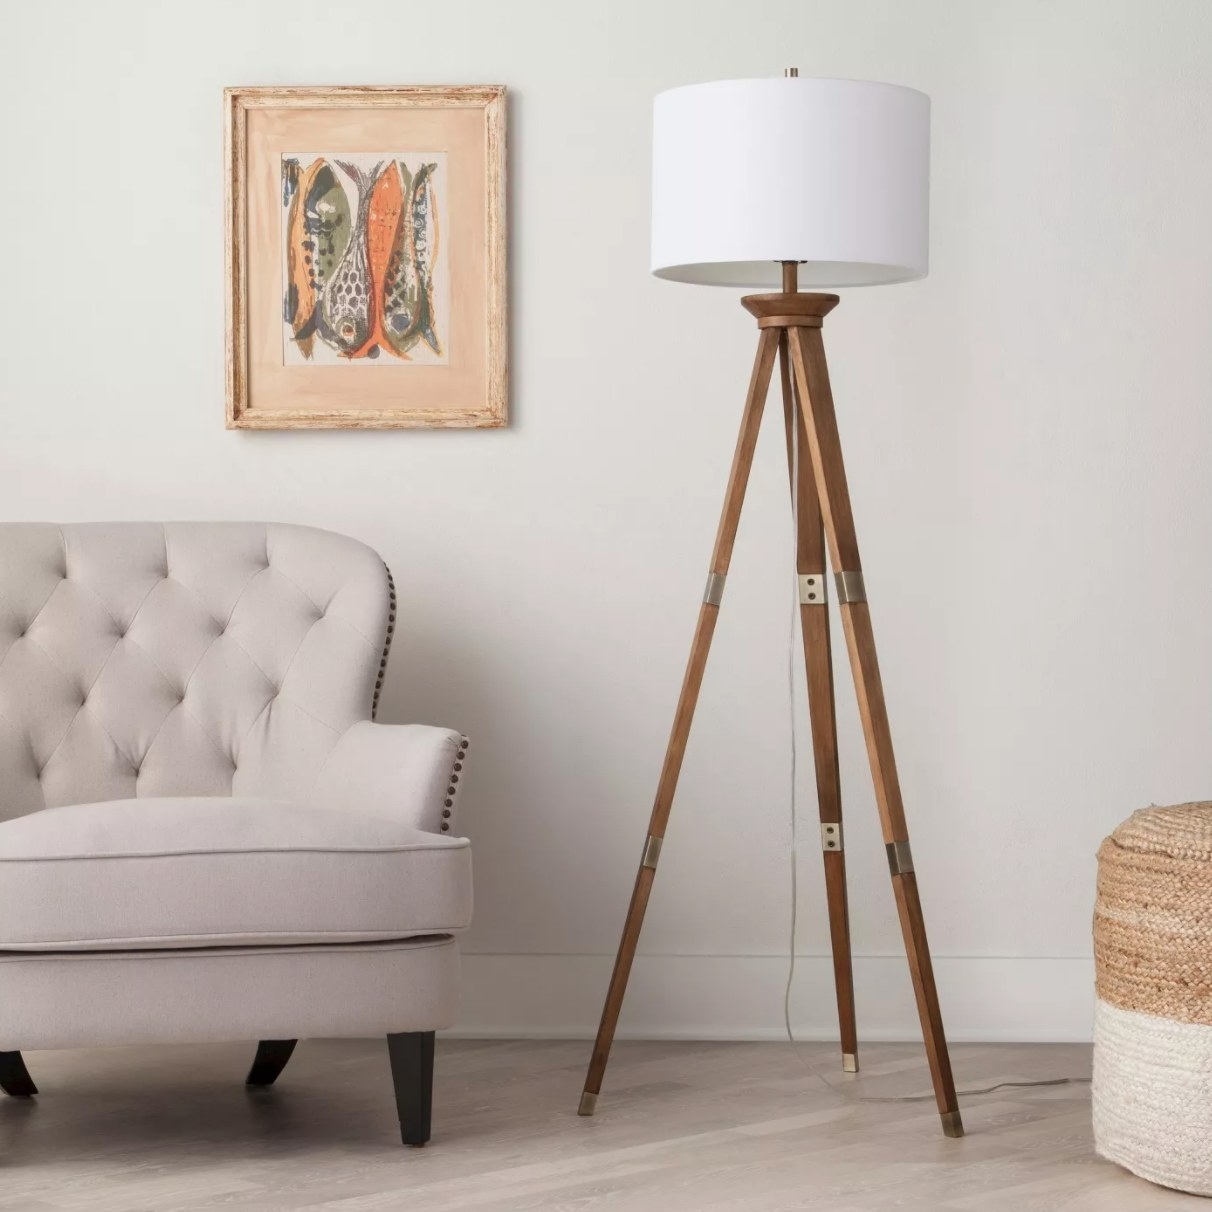 The tripod floor lamp with oak wood legs and a white shade